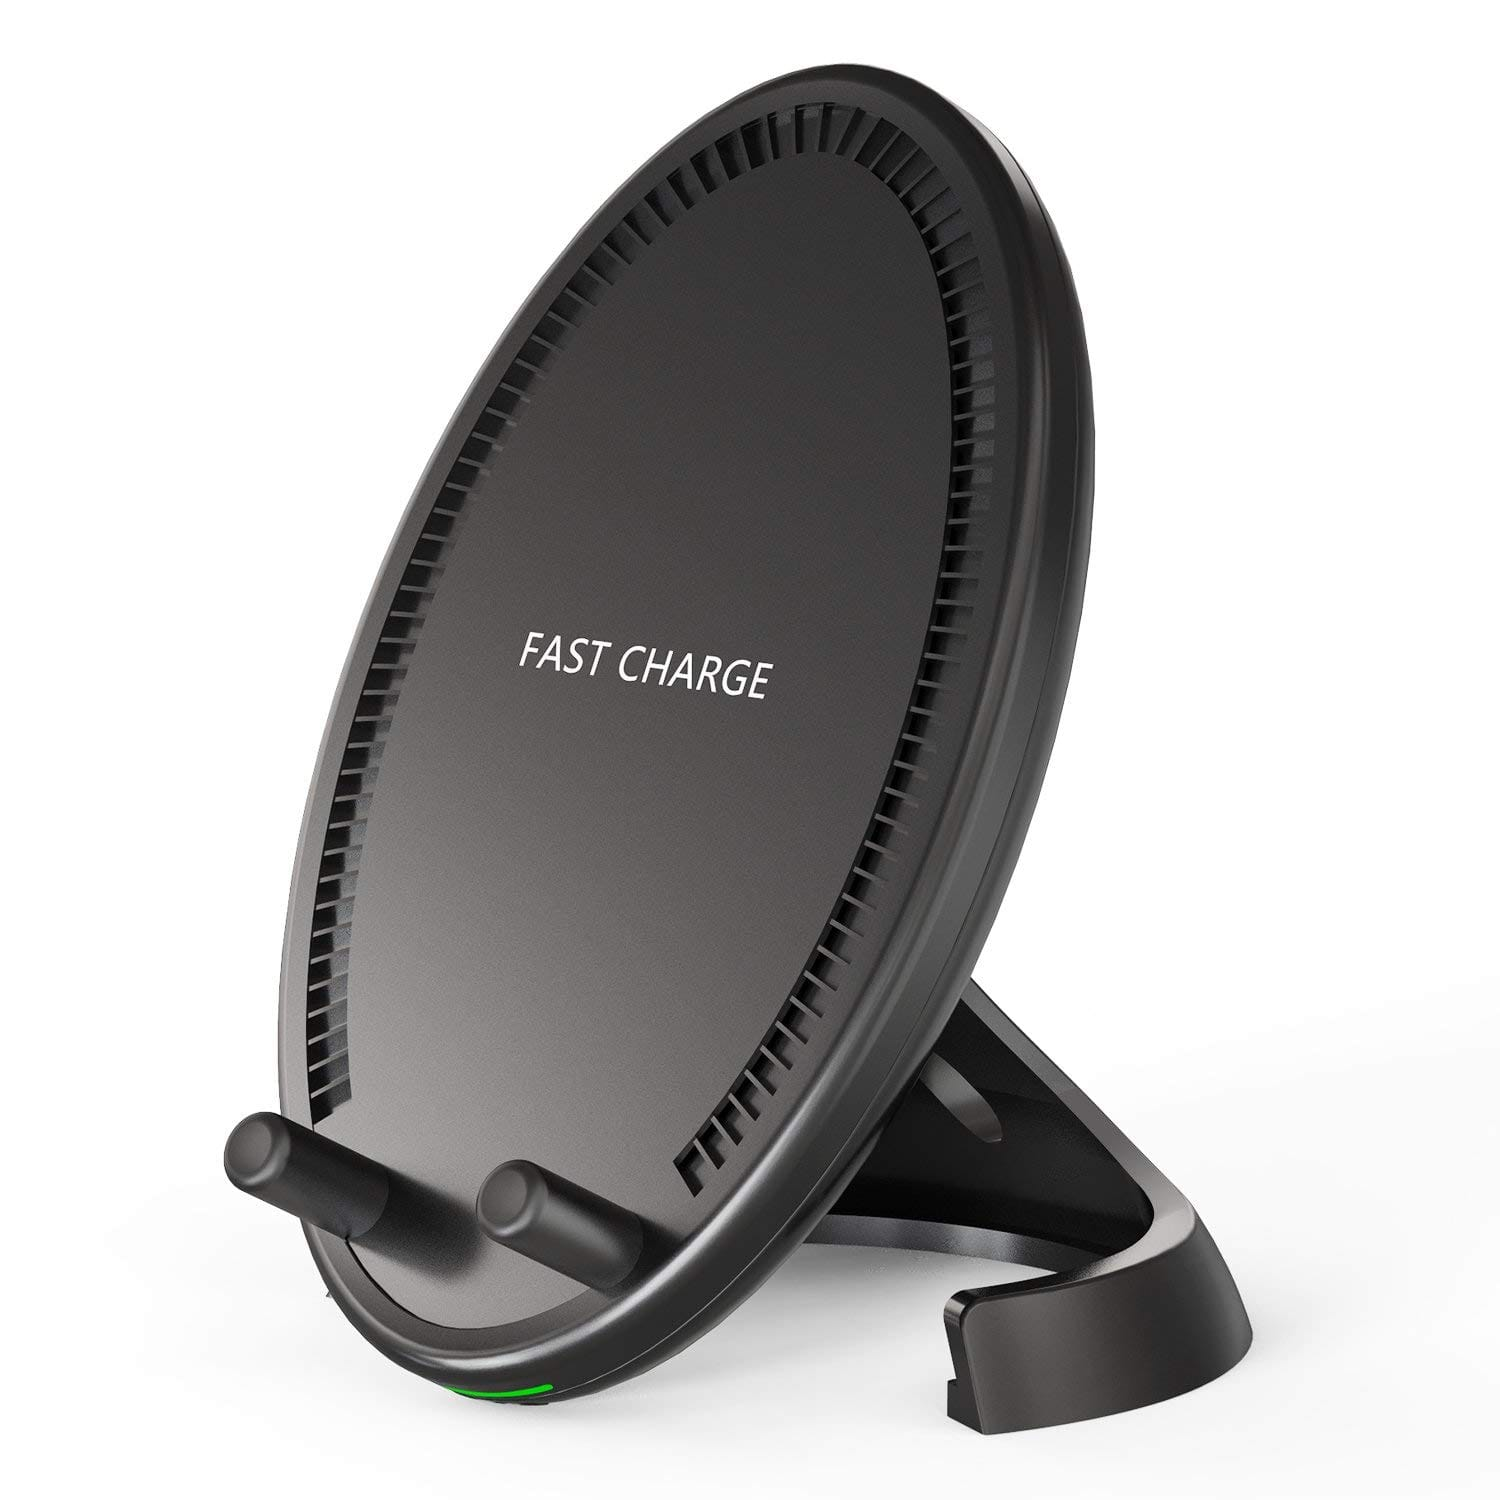 Wireless Charger 10W Fast Charging for Galaxy S8/S8 Plus/S7/S7 Edge,Note 8/Note 5, 5W for iPhone X iPhone 8/8 Plus (C580) $10.76